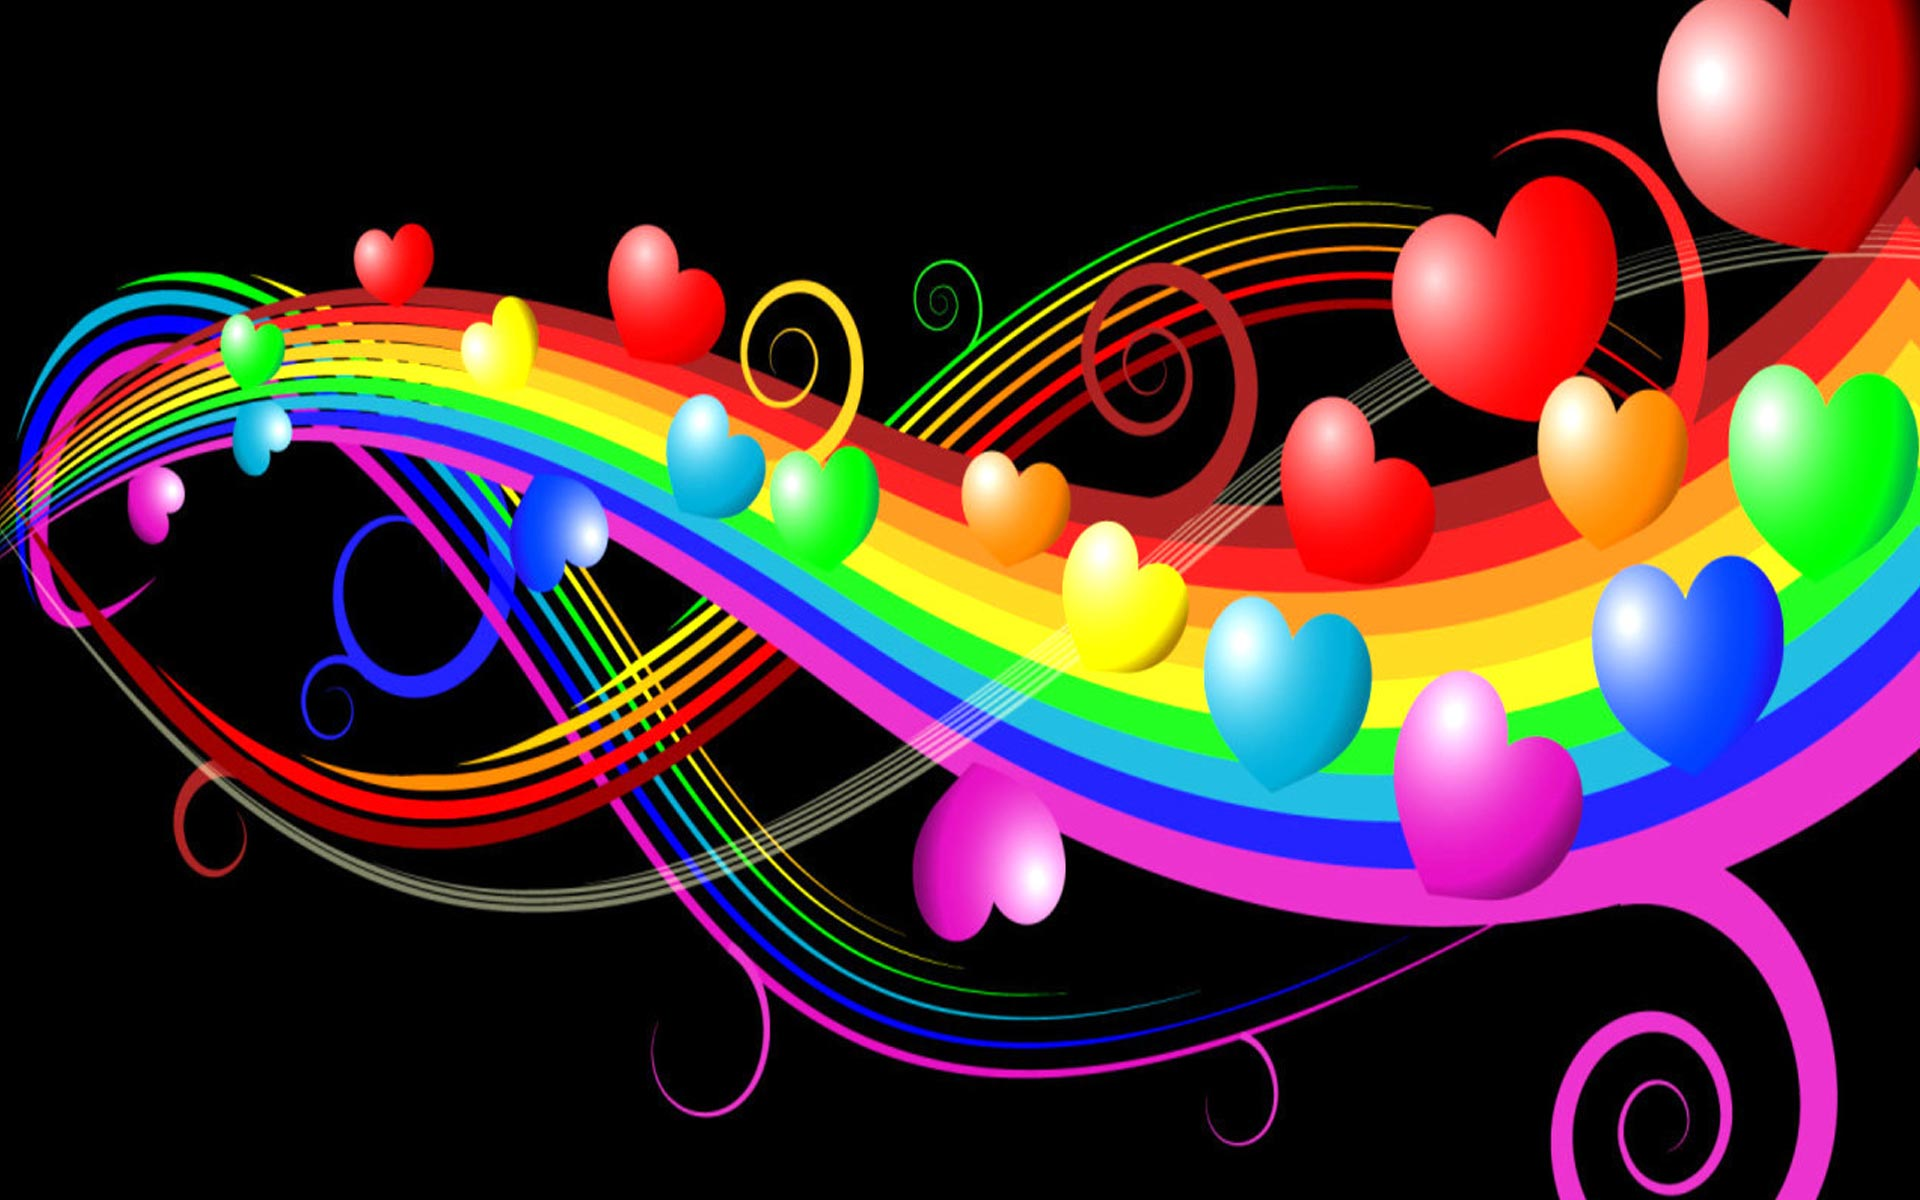 Free Download Hd Wallpaper Themes Best Love Songs Widescreen